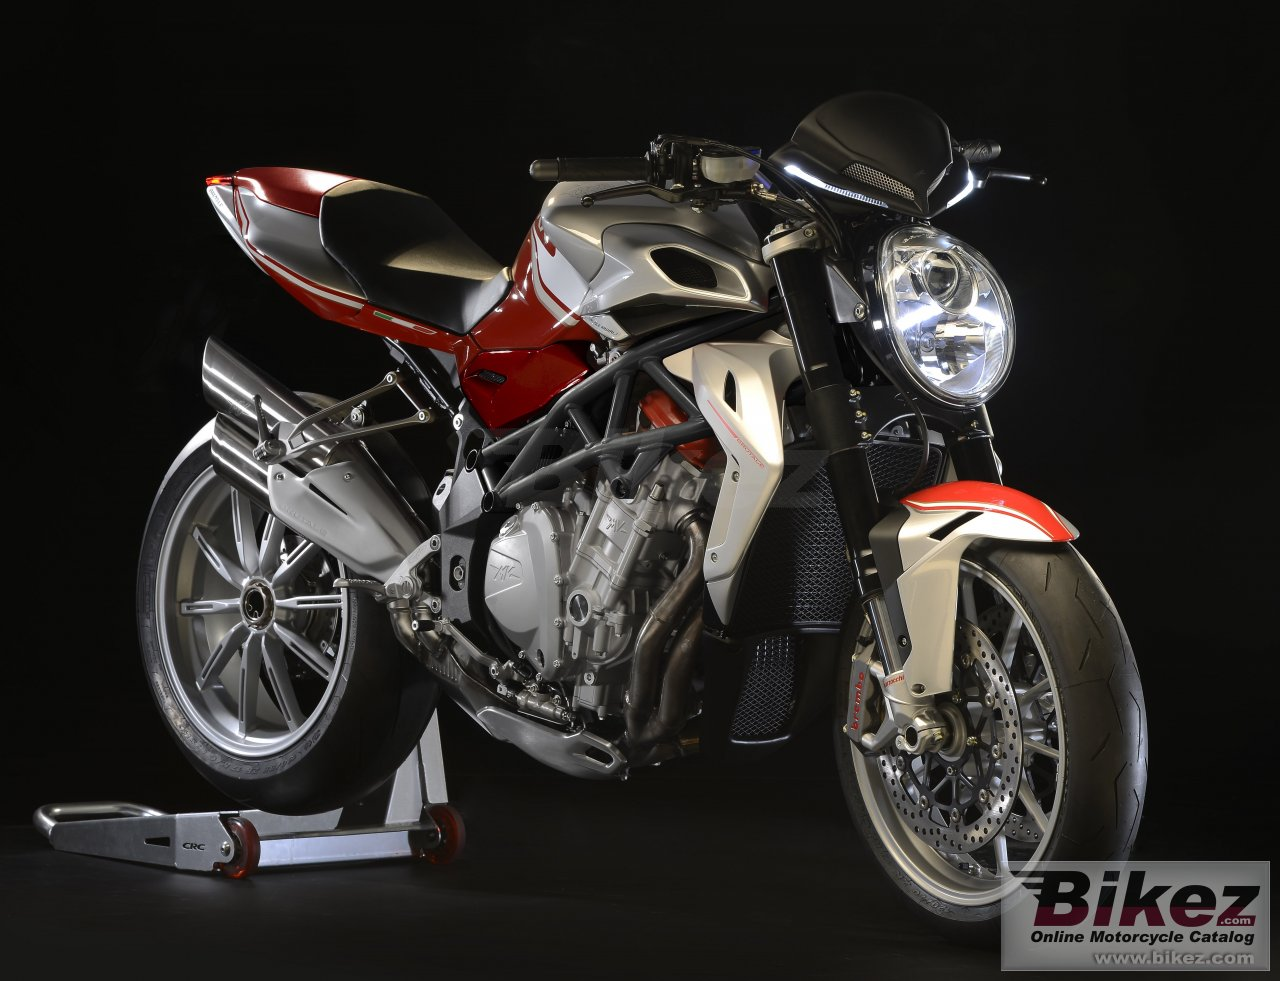 Big MV Agusta brutale 1090 rr picture and wallpaper from Bikez.com